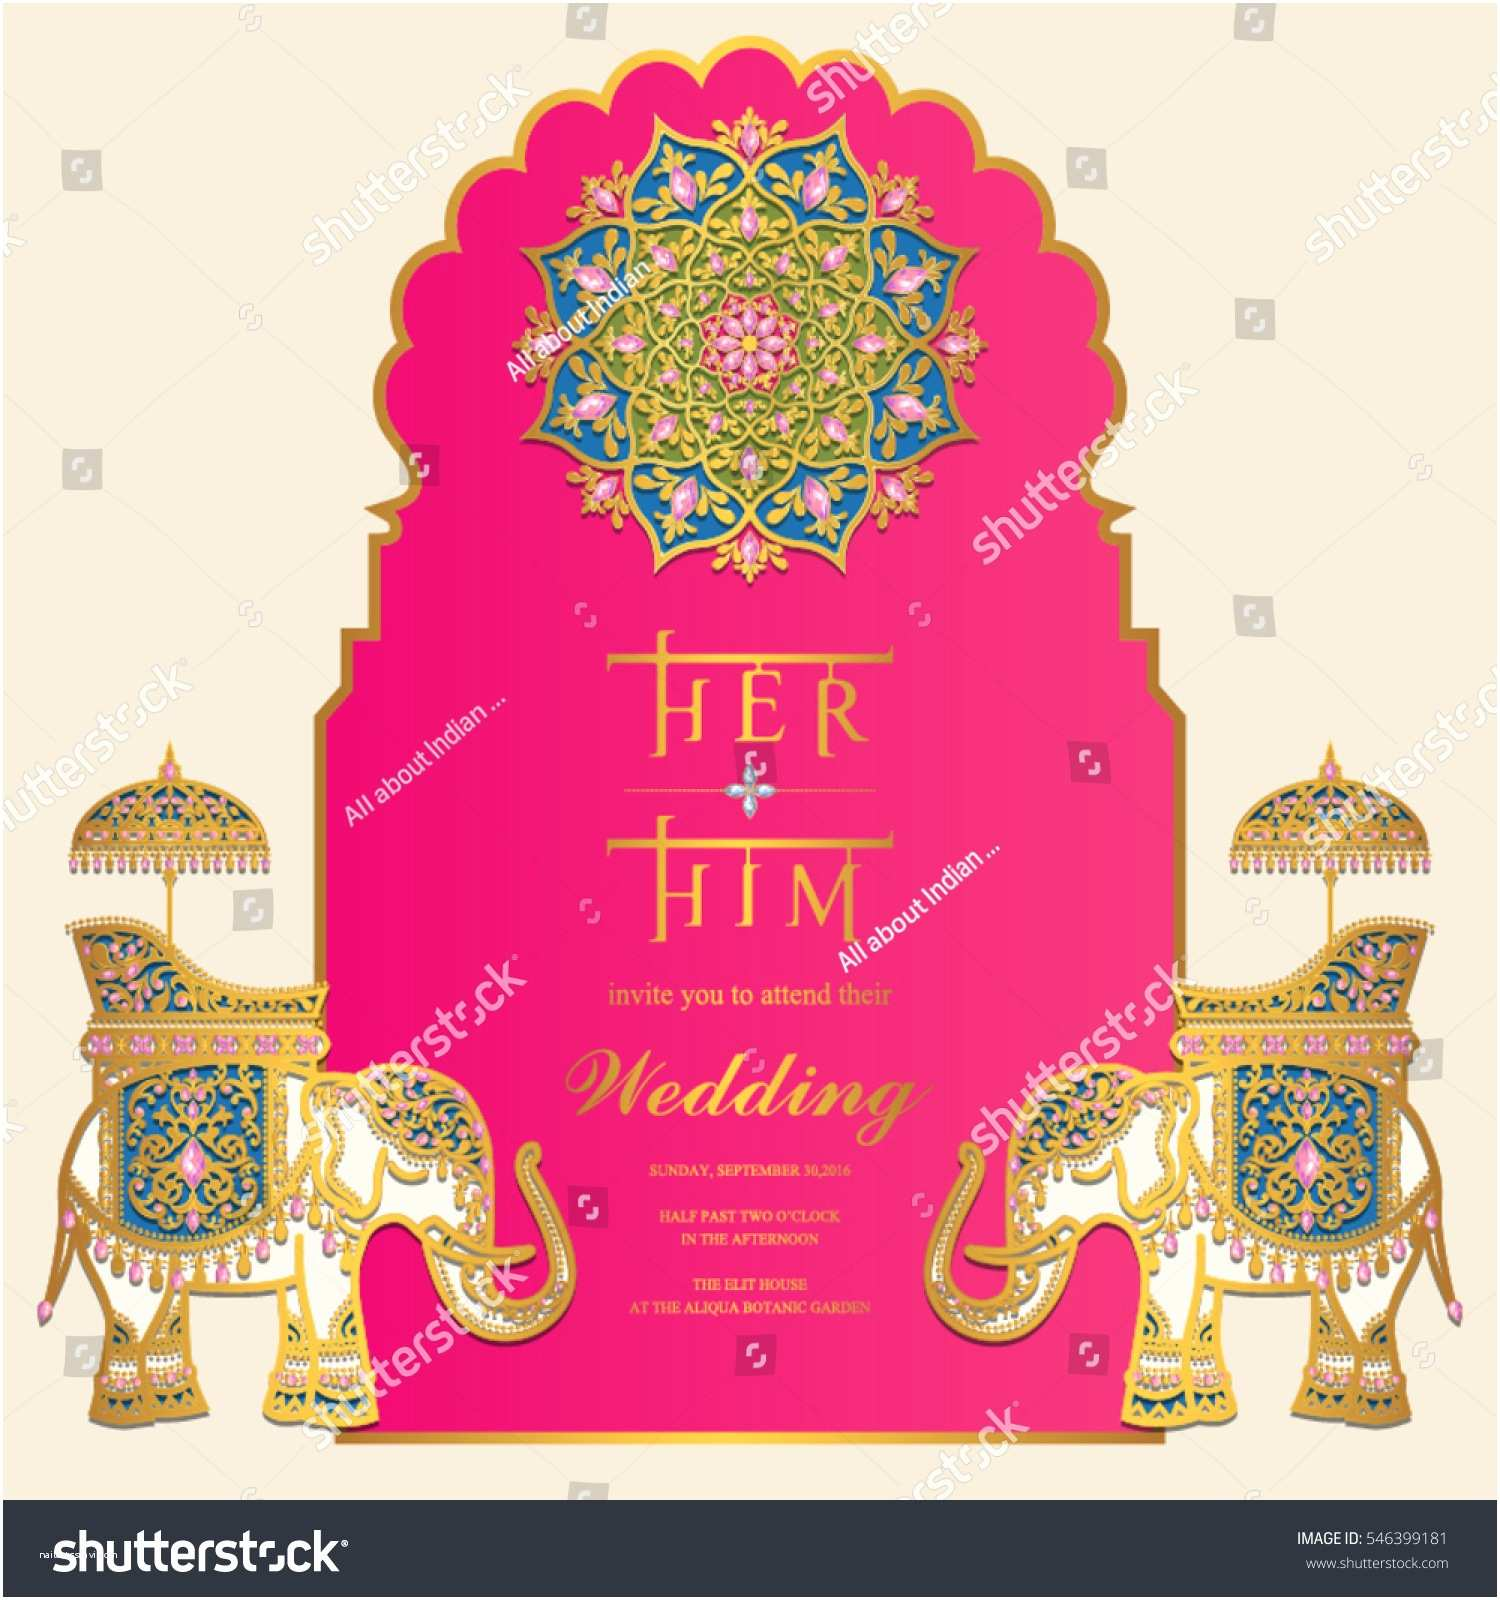 Wedding Invitation for Indian Wedding Indian Wedding Invitation Card Templates Gold Stock Vector